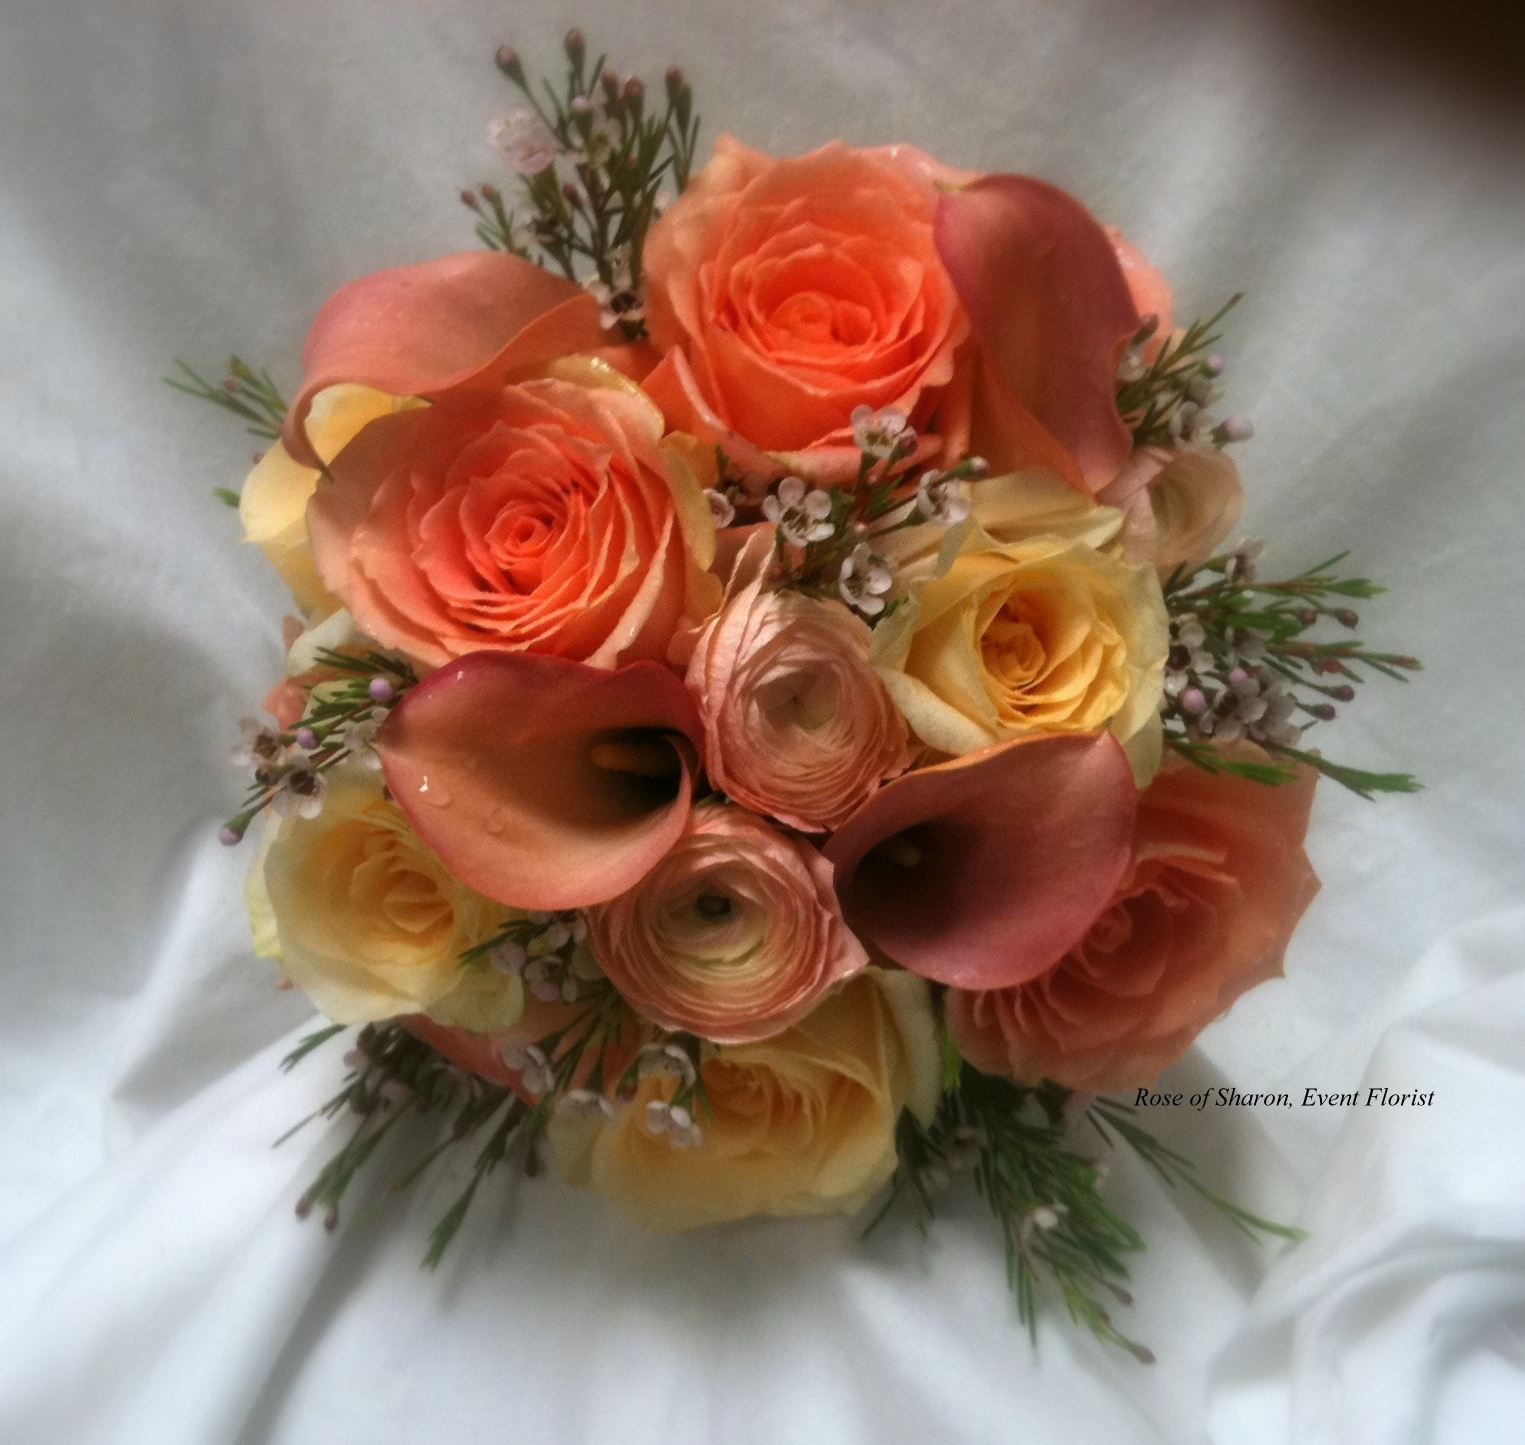 Hand-Tied Round Bouquet. Orange Roses, Calla Lilies, and Ranunculus. Rose of Sharon Floral Designs